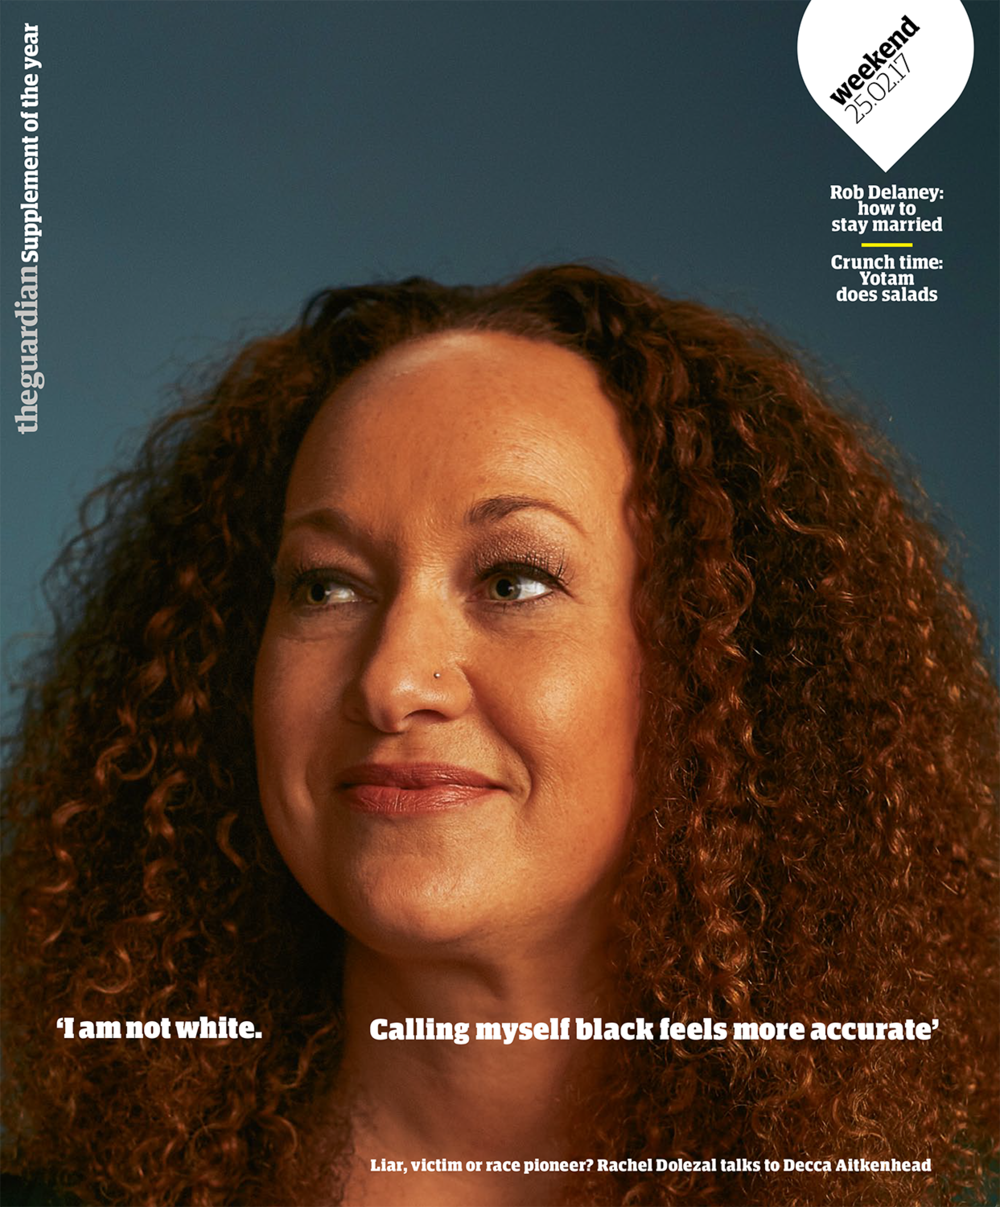 dolezal_cover.png